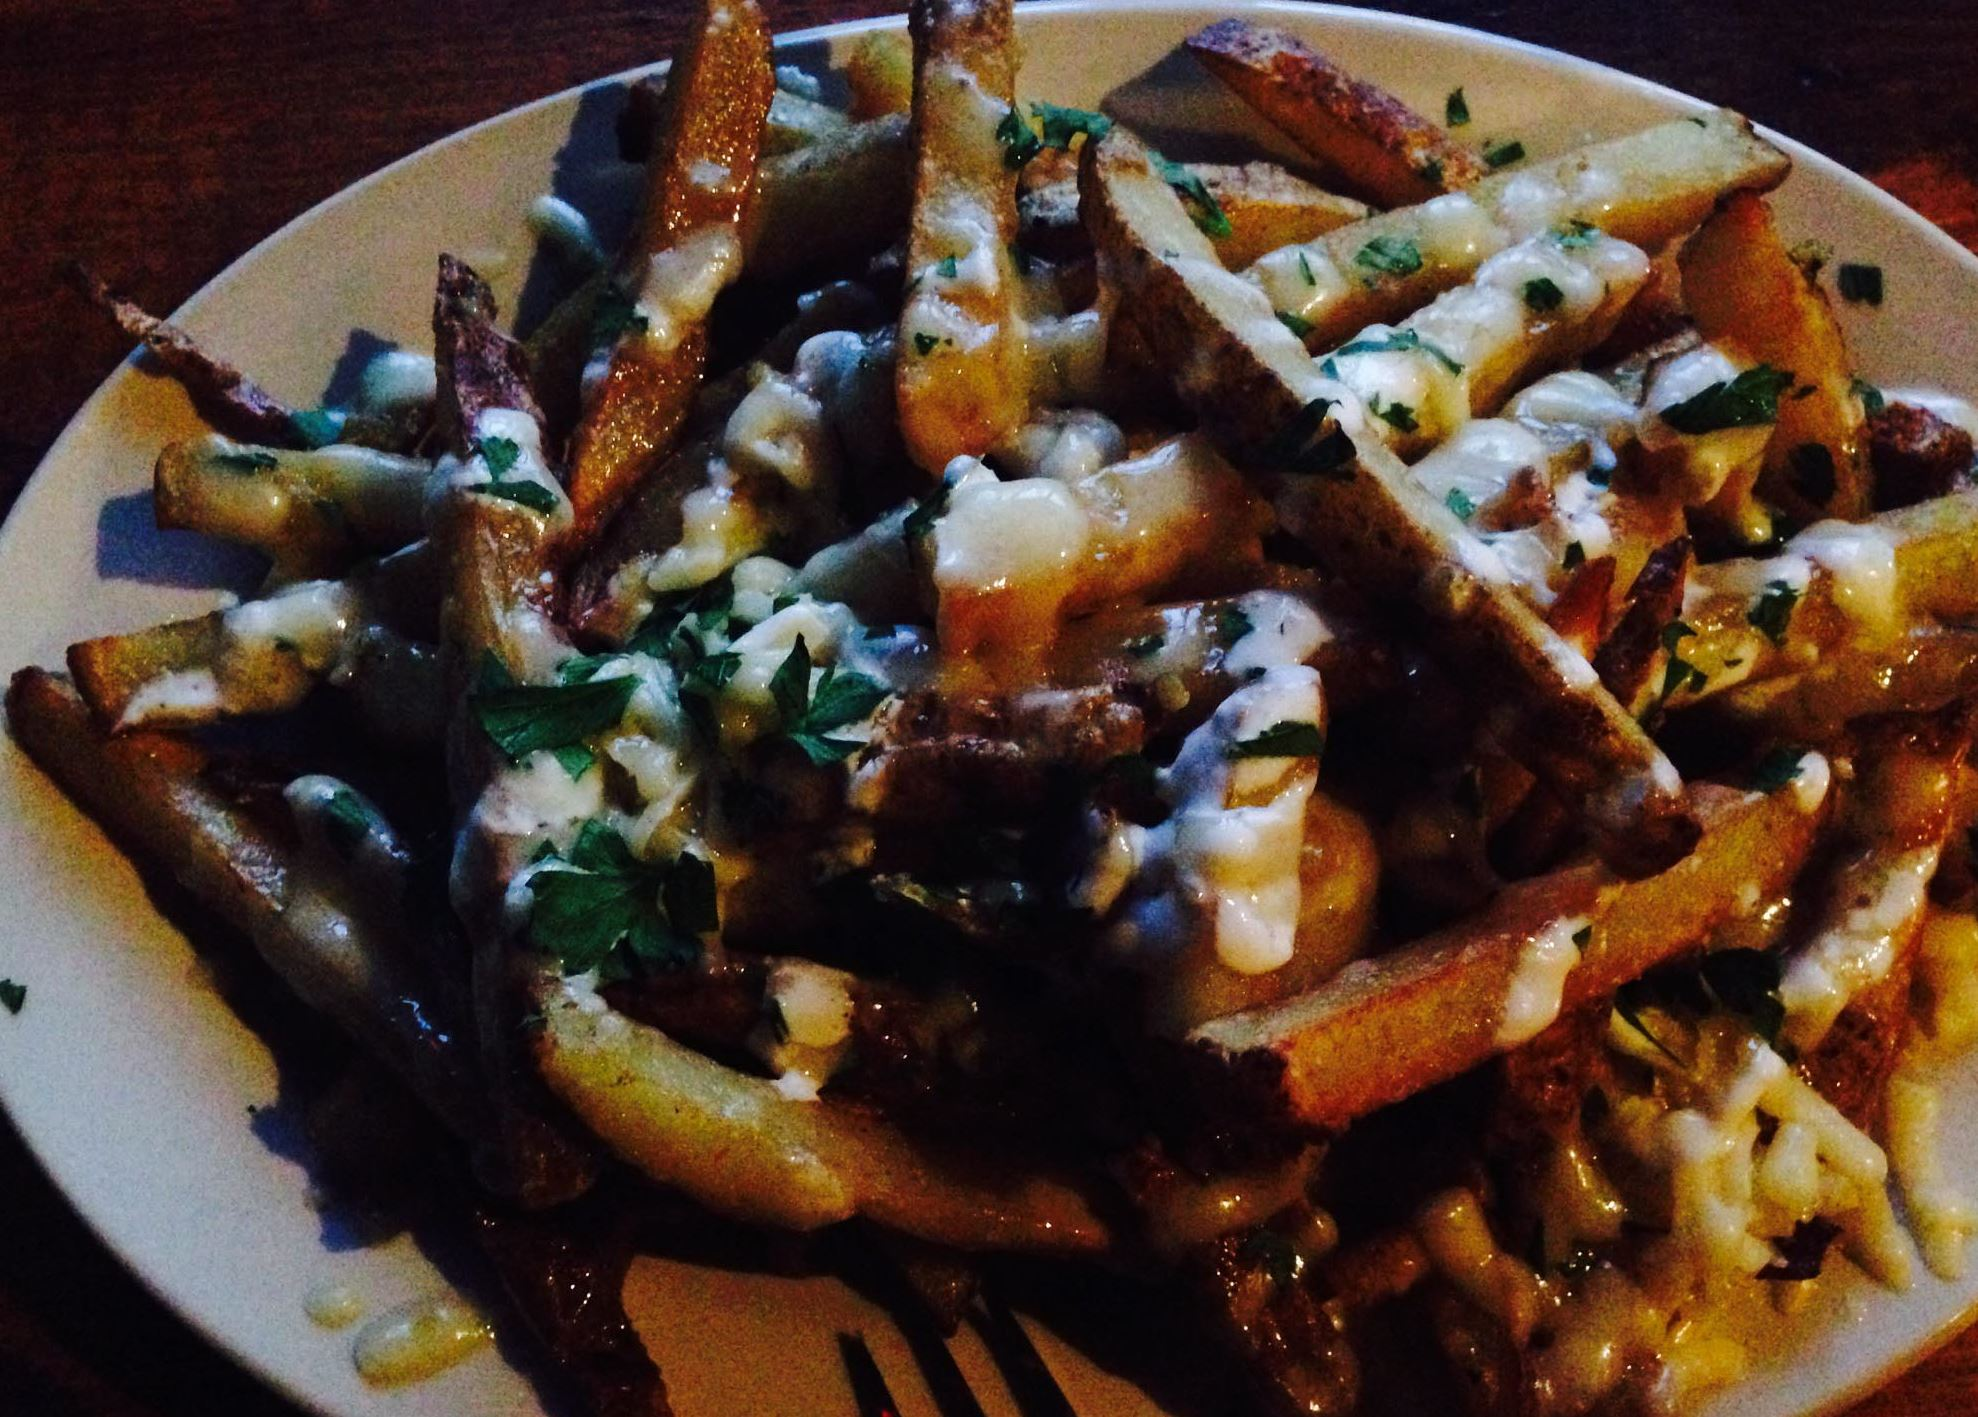 20140403MBMunch1 Polish fries are topped with creme fraiche and cheddar cheese, one of the specials on the menu for International Fries Night at Independent Brewing Company in Squirrel Hill.